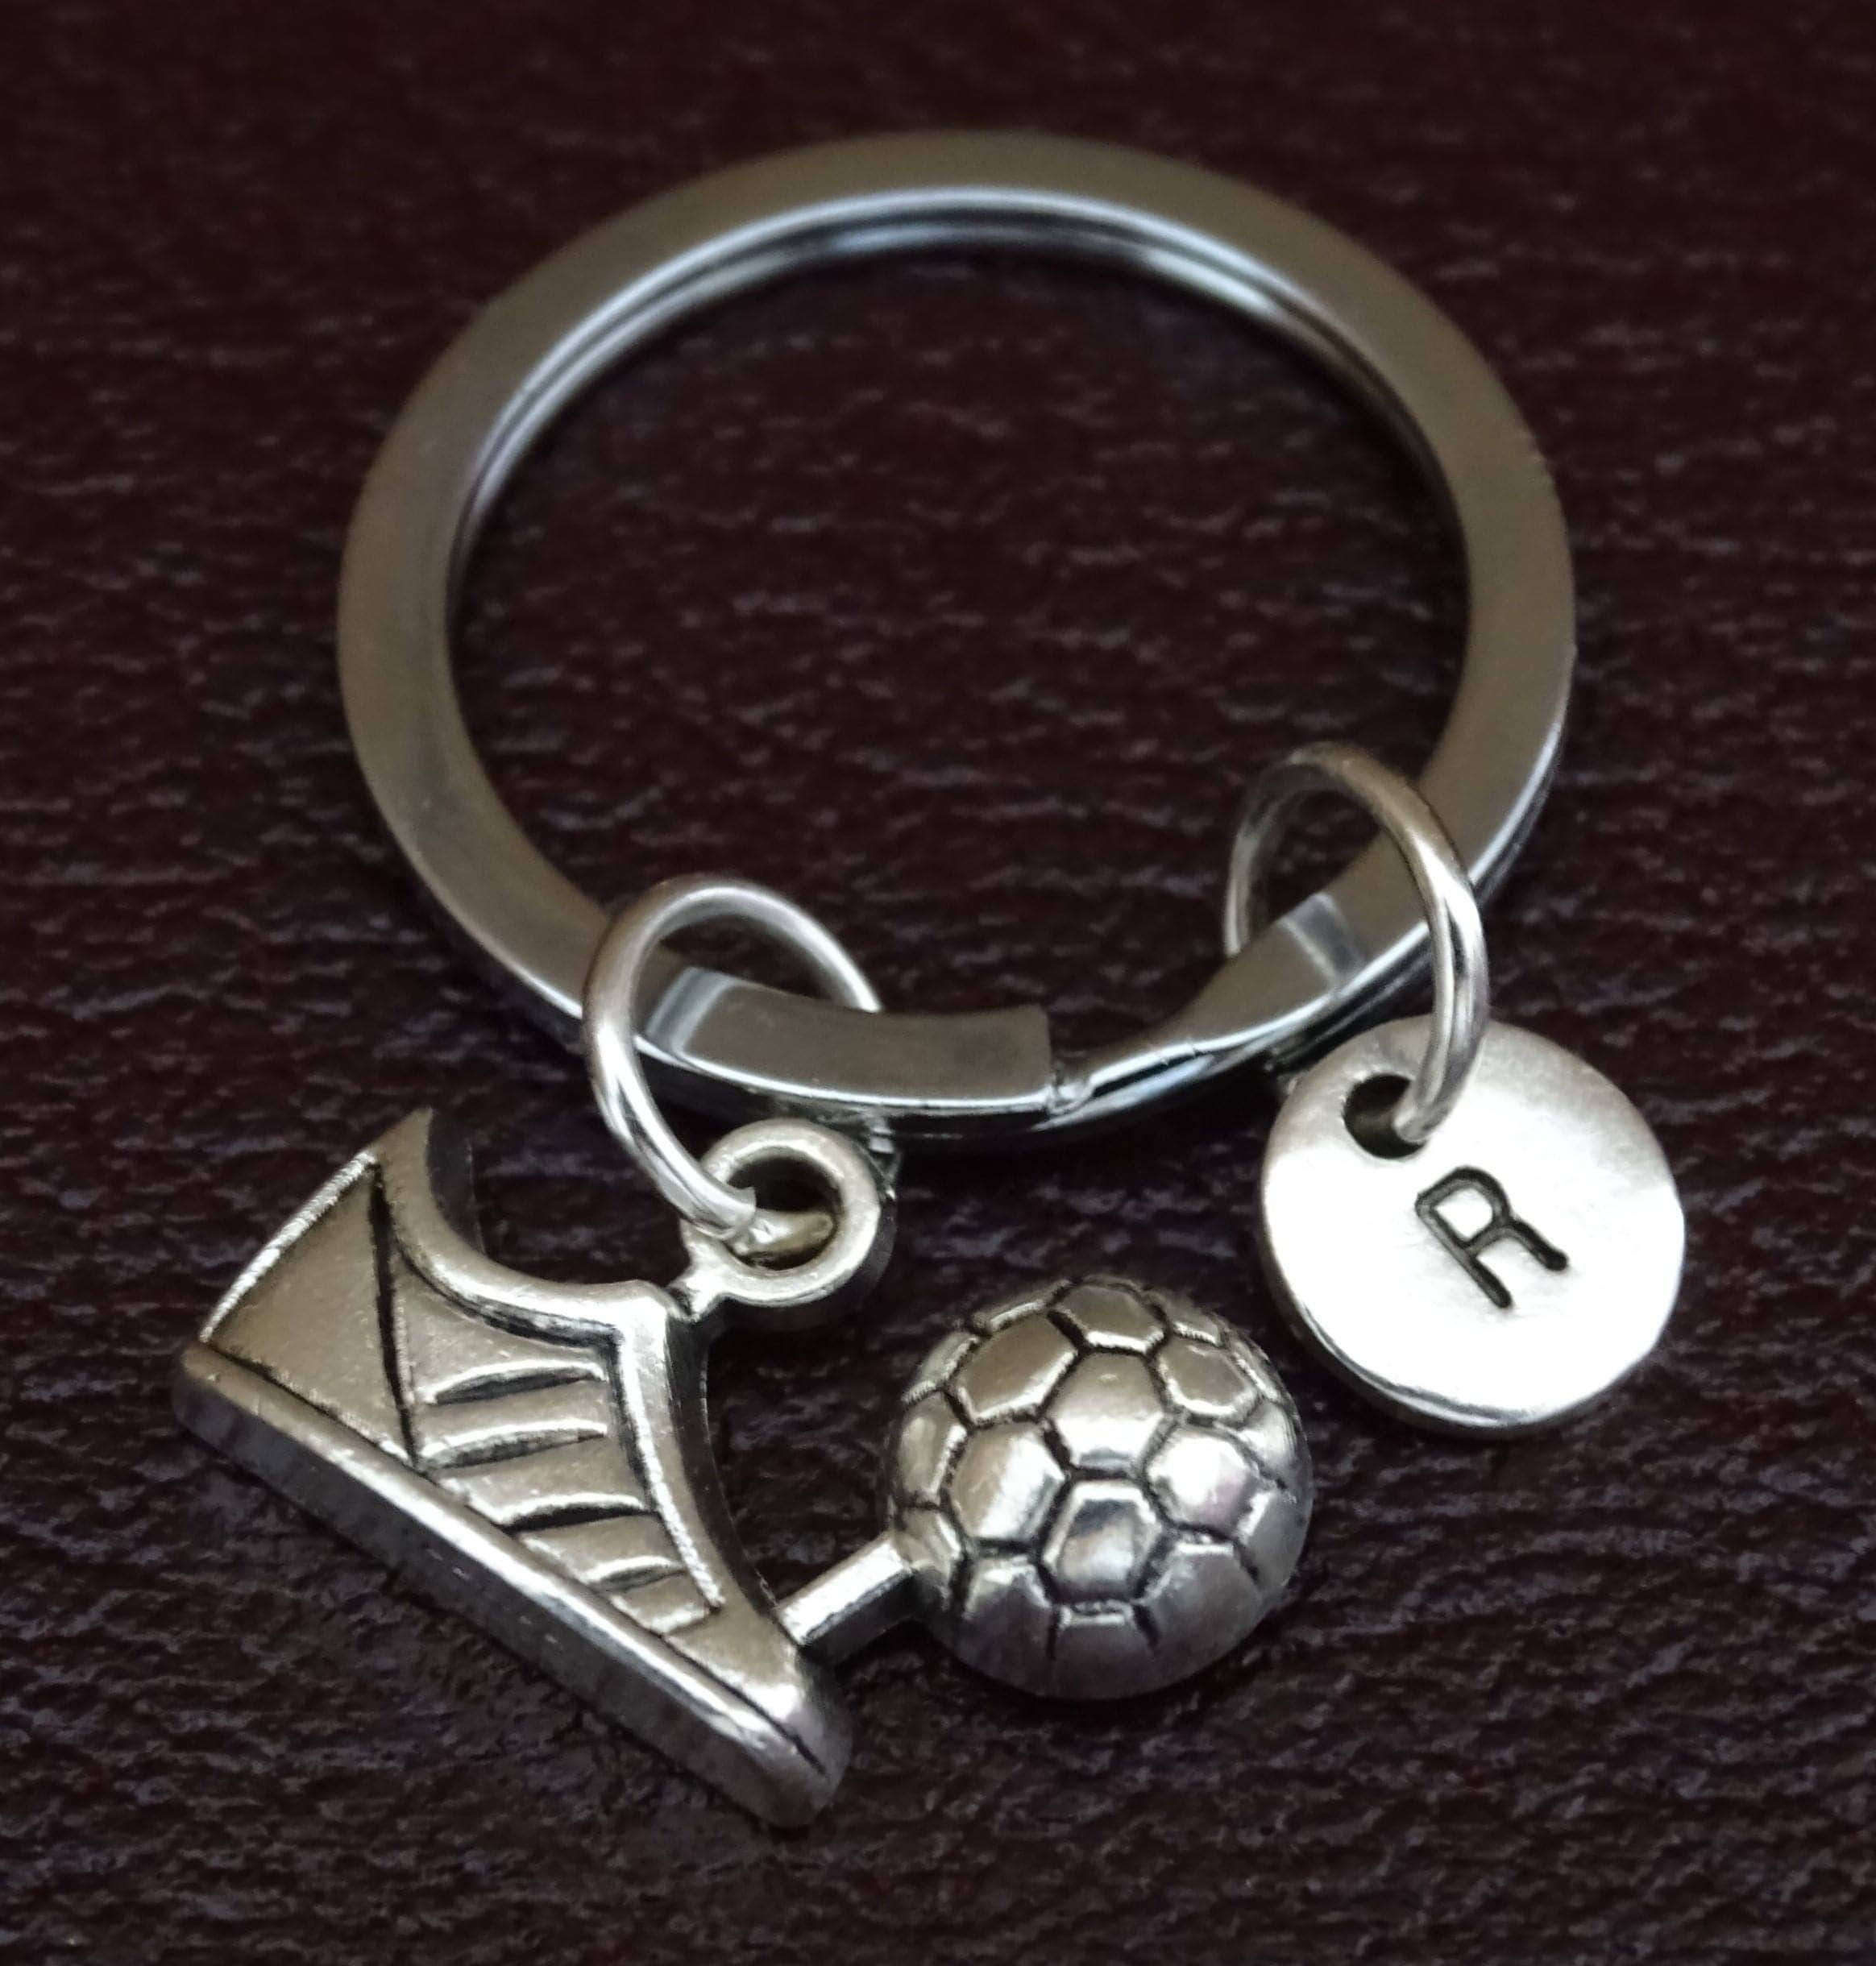 pendant il gift fullxfull brother chain key dad p team gjrf charm soccer keychain coach